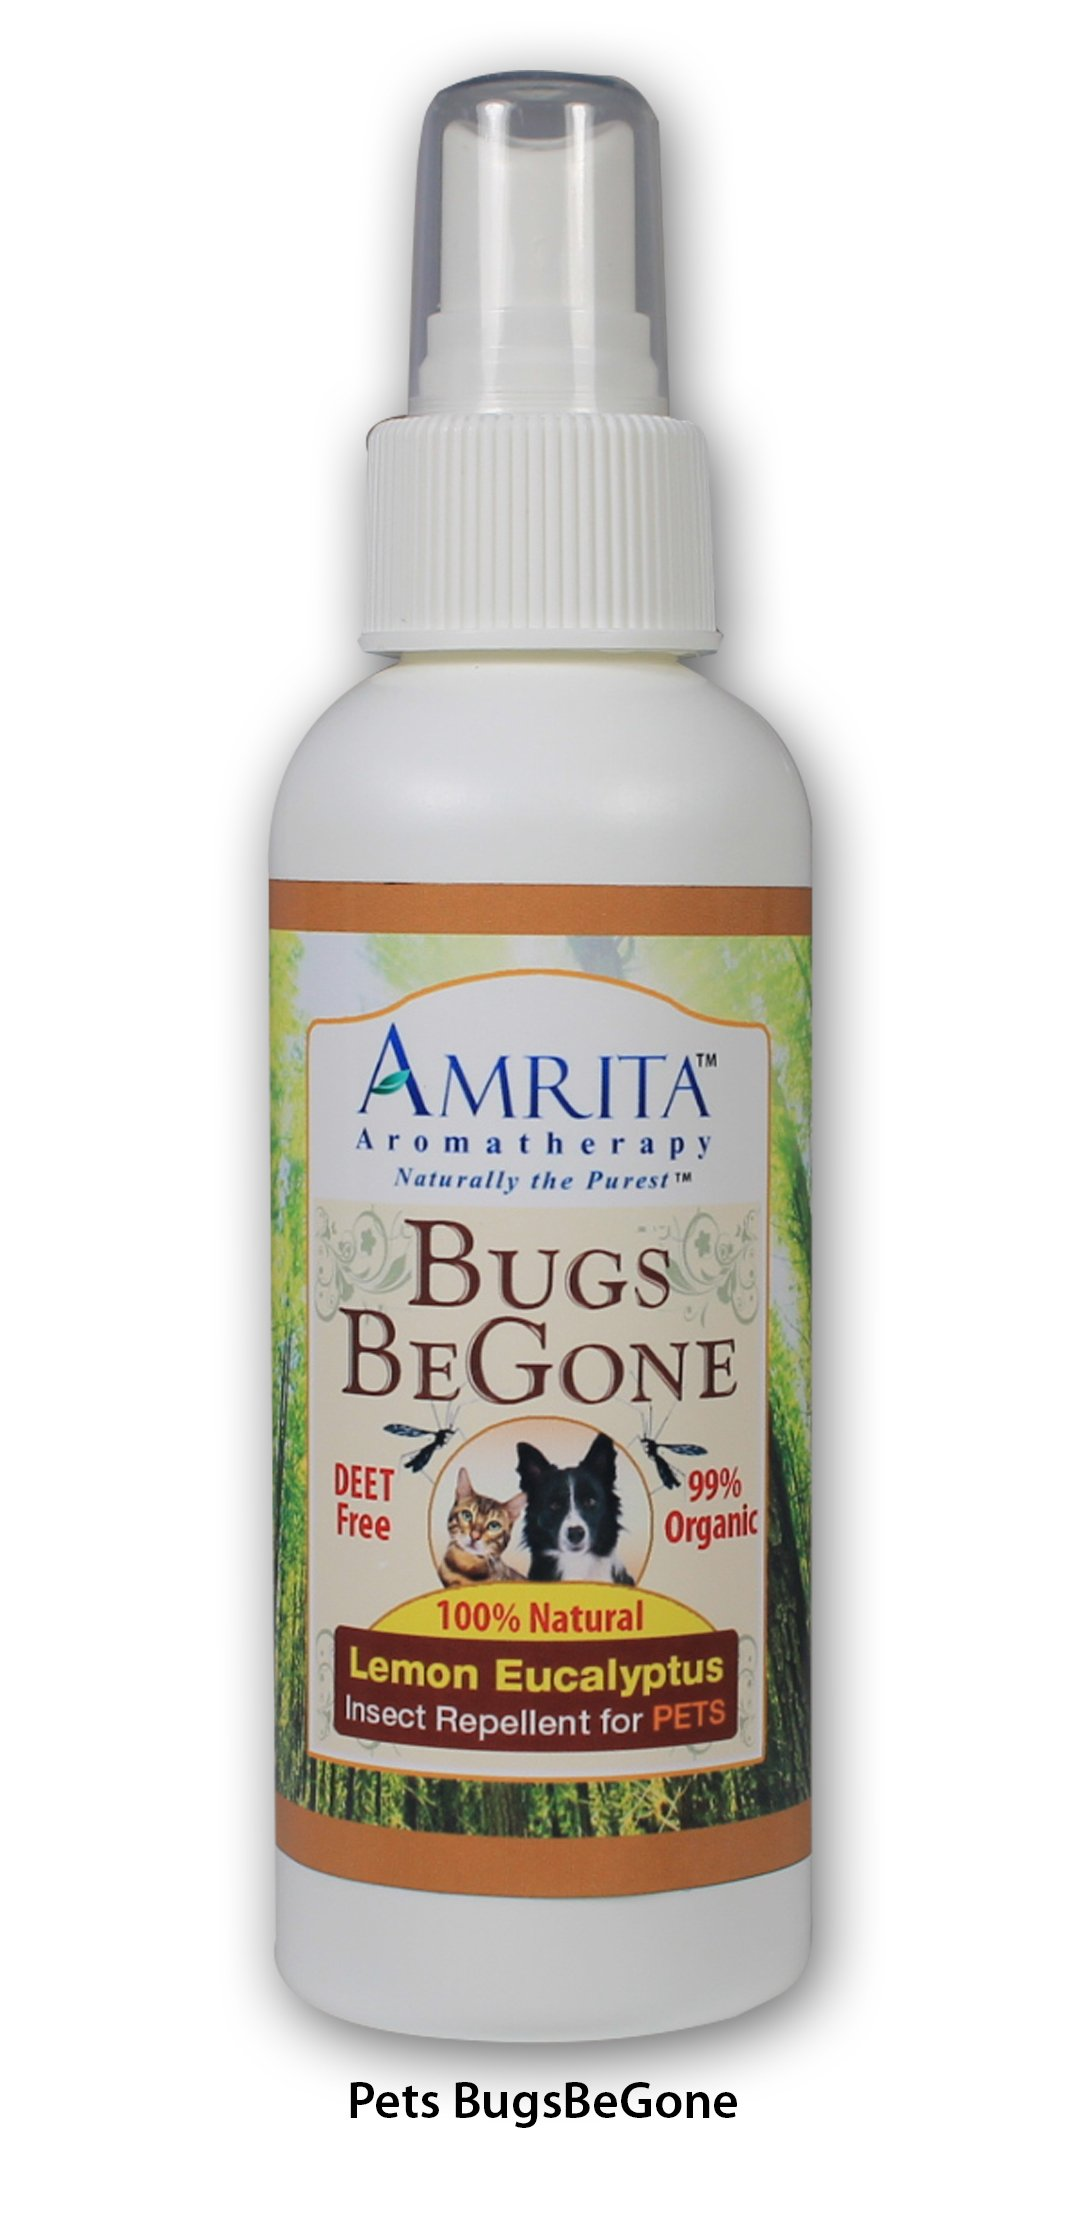 Bugs BeGone ( Insect Repellent) for PETS - Mosquitoes, Fleas, Ticks & Chiggers - 100% Natural Essential Oil Blend - DEET-Free - (SIZE: 4oz)